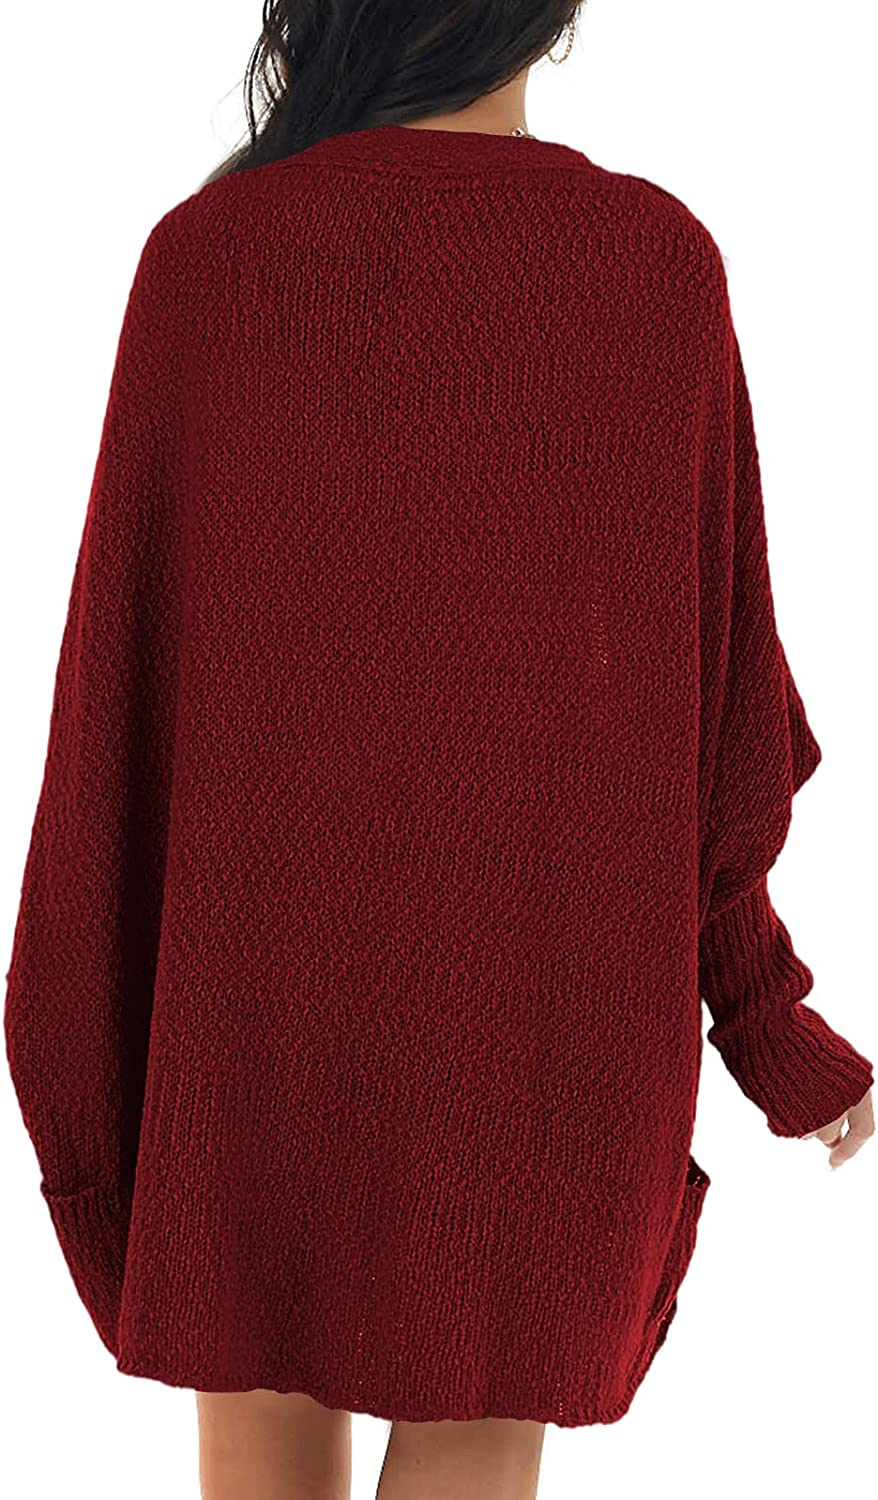 Womens Shawl Collar Long Dolman Sleeve Open Front Cardigan Casual Loose Cable Knitted Sweaters with Pockets